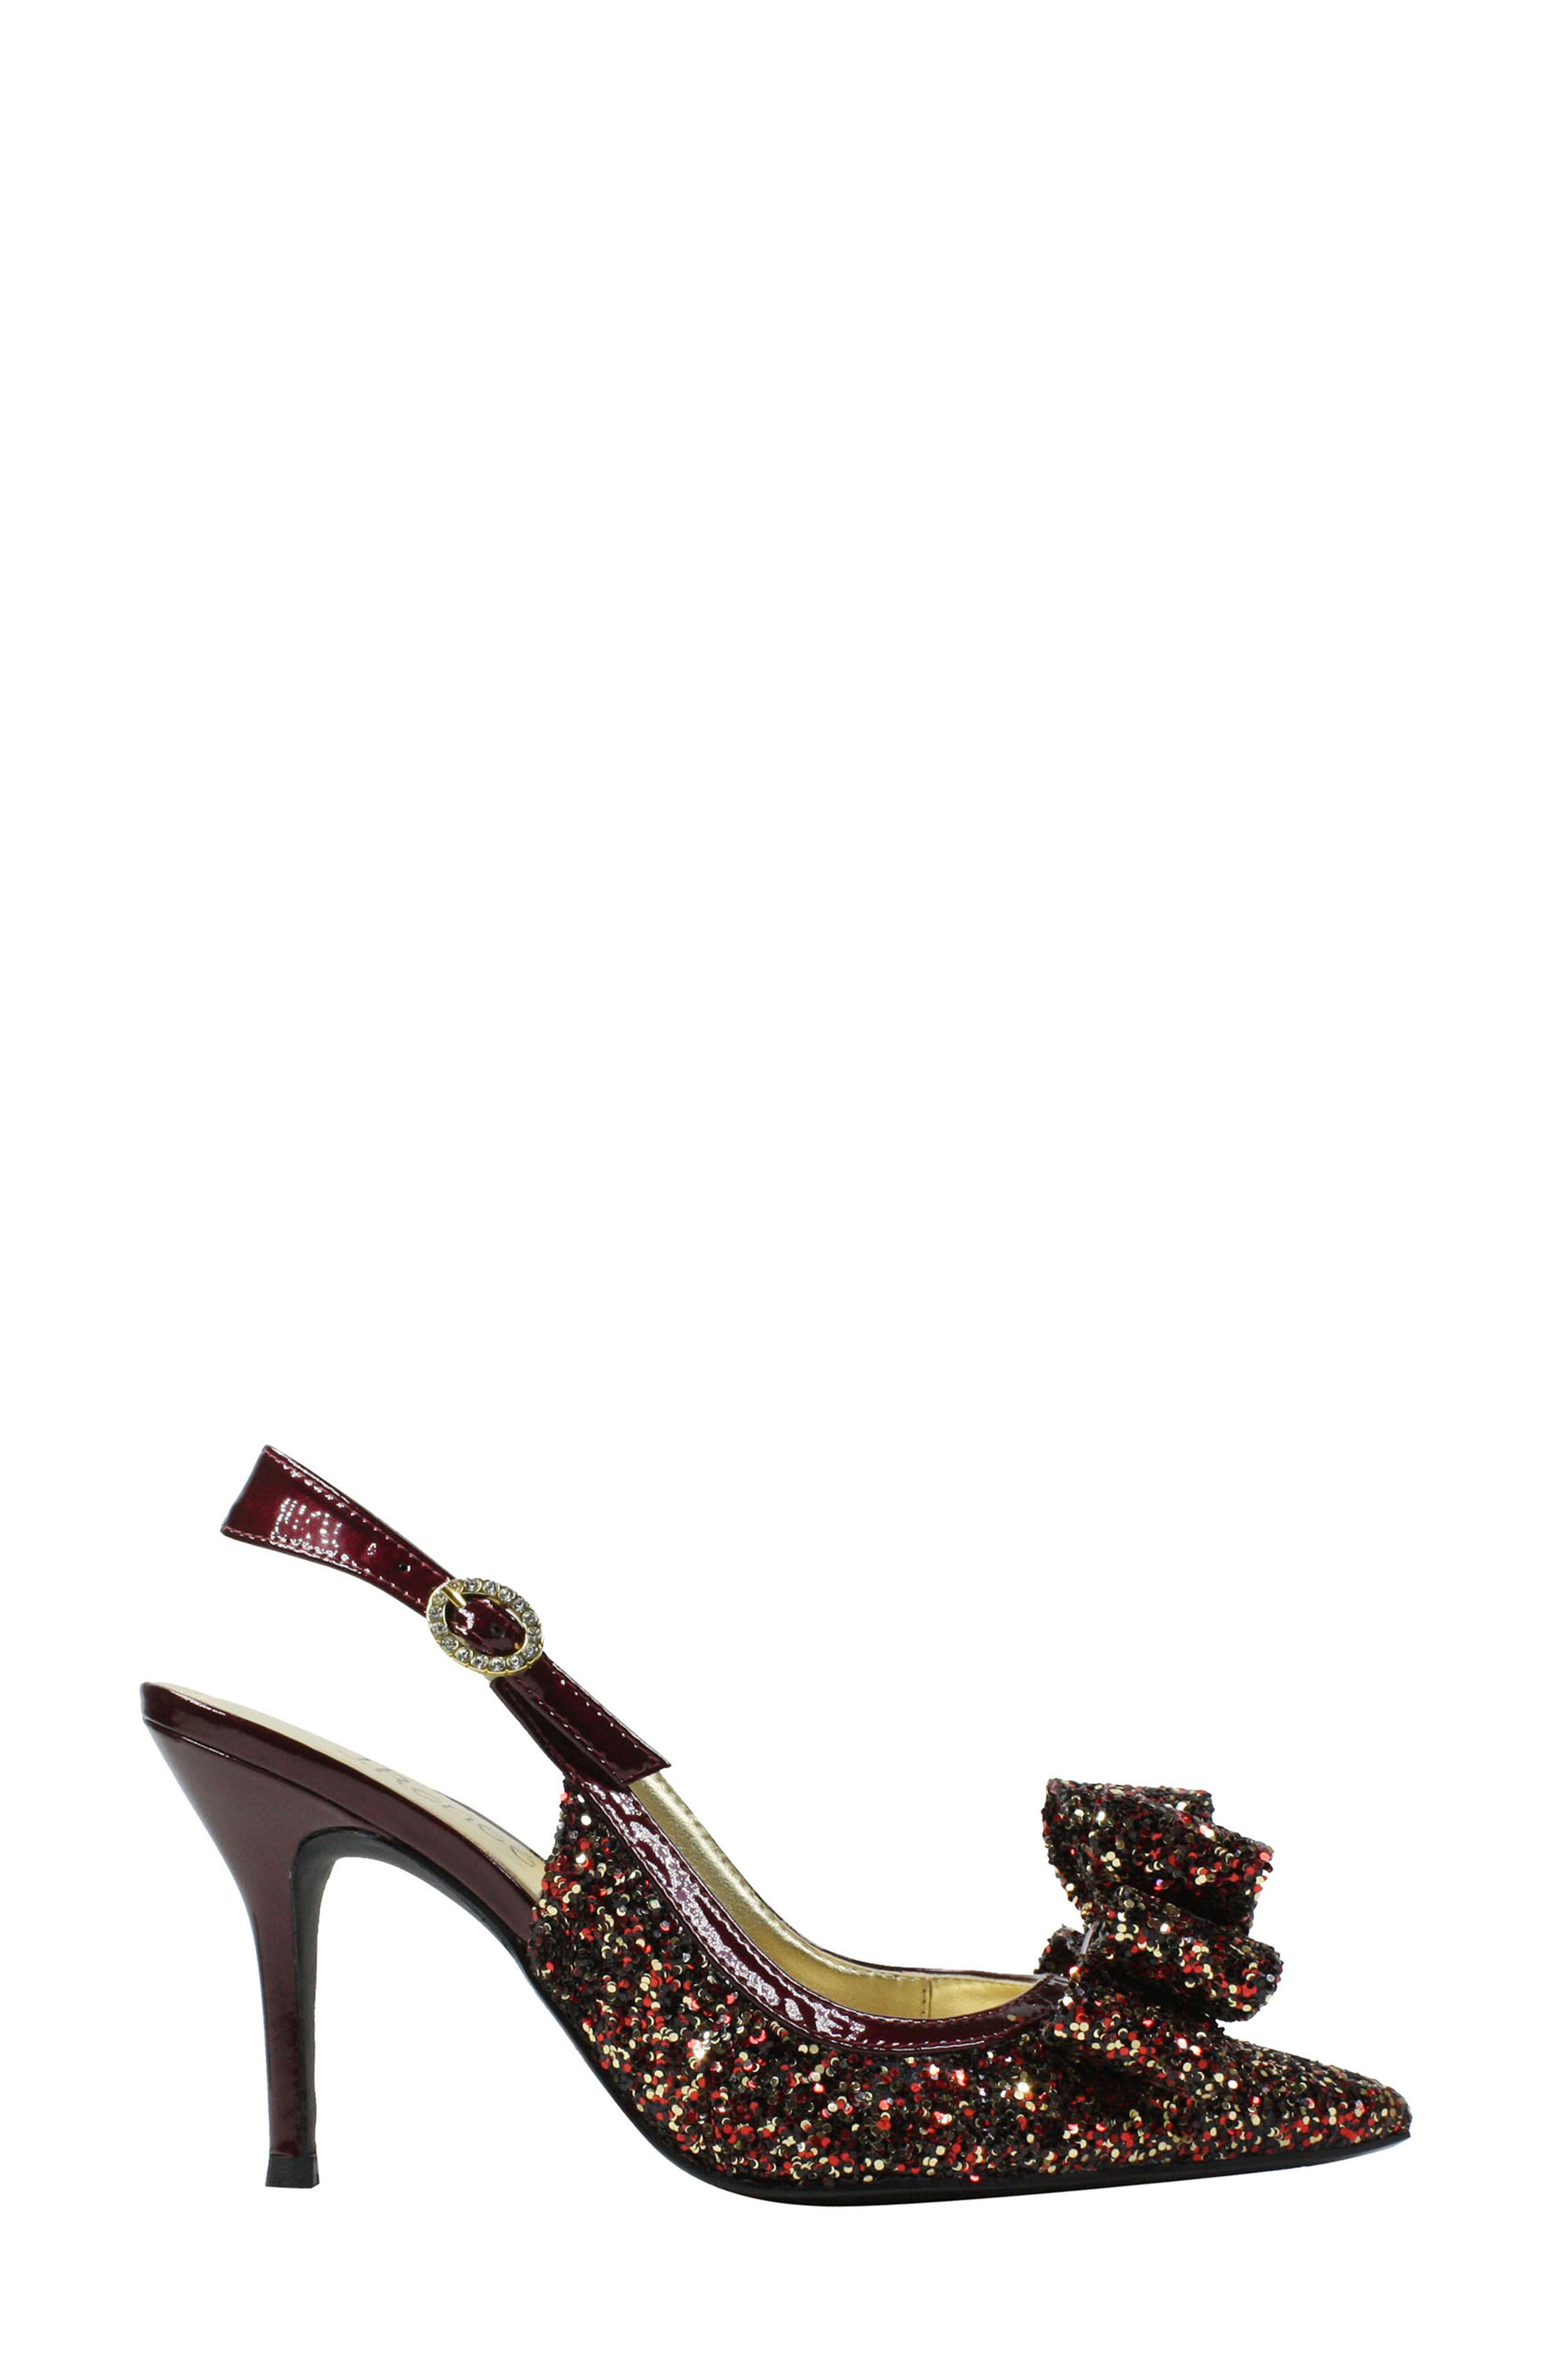 Alternate Image 3  - J. Reneé Charise Slingback Pump (Women)